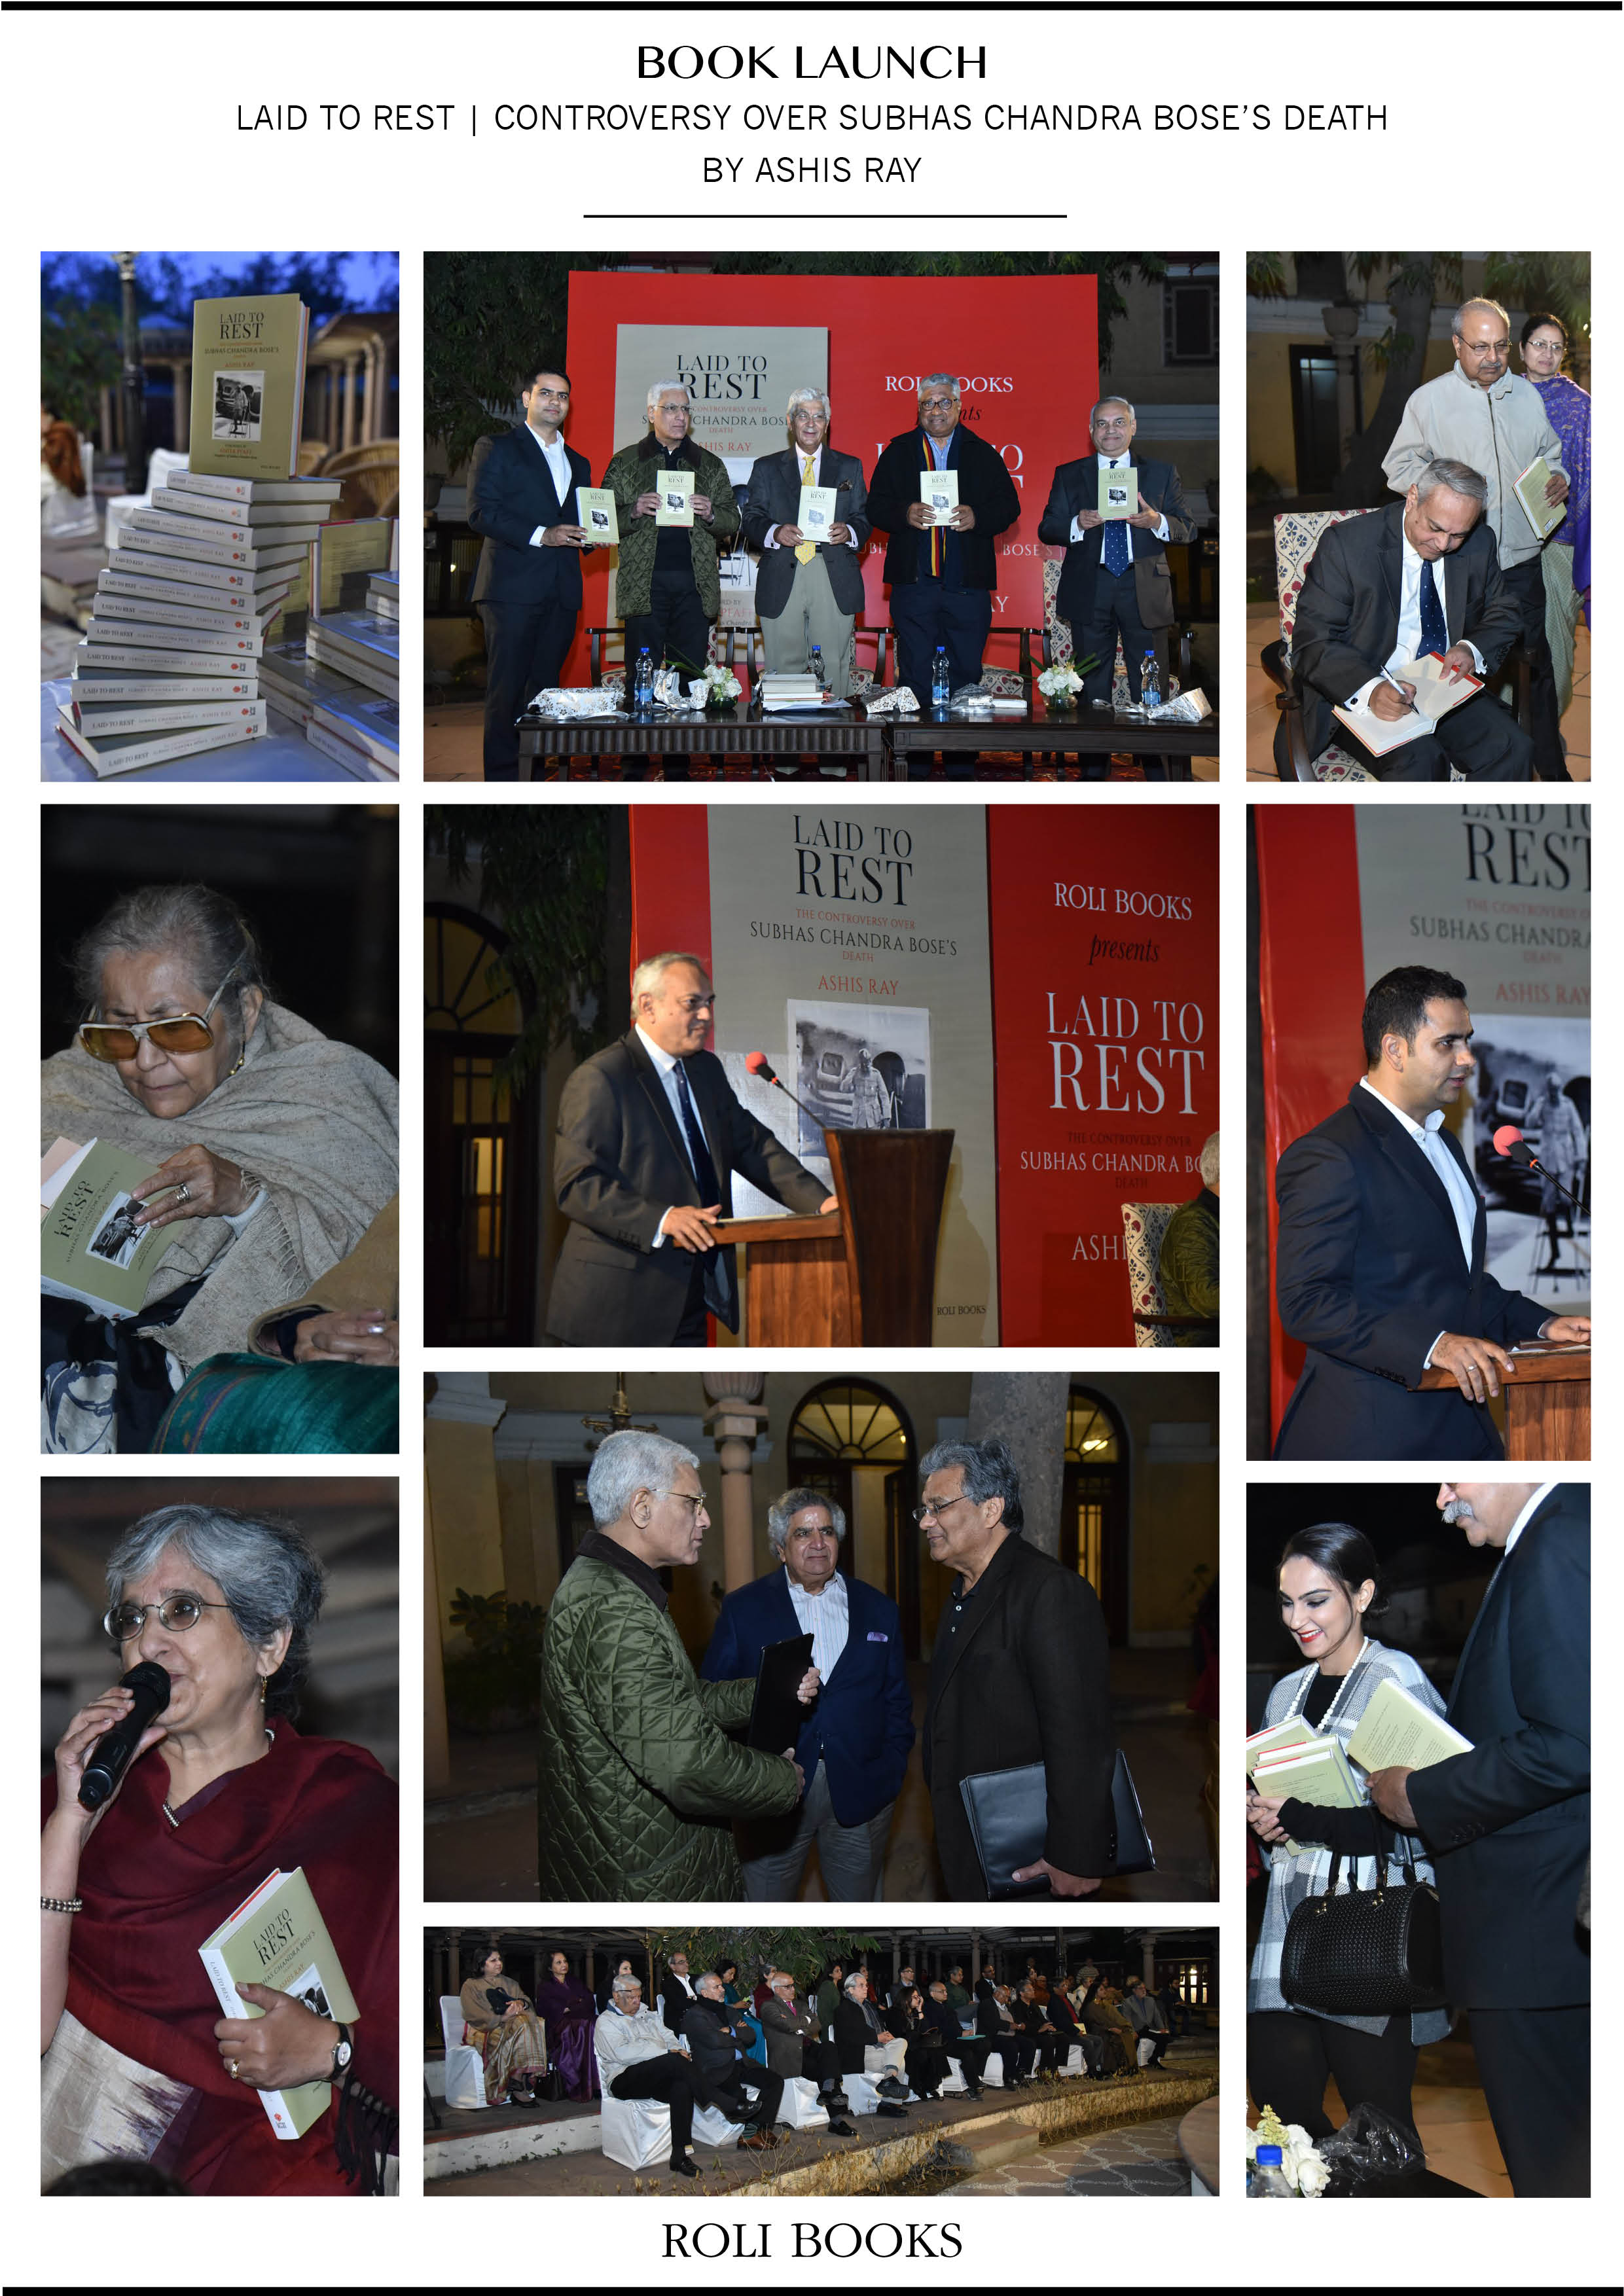 Book Launch <br><span> Laid To Rest by Ashis Ray, New Delhi </span>